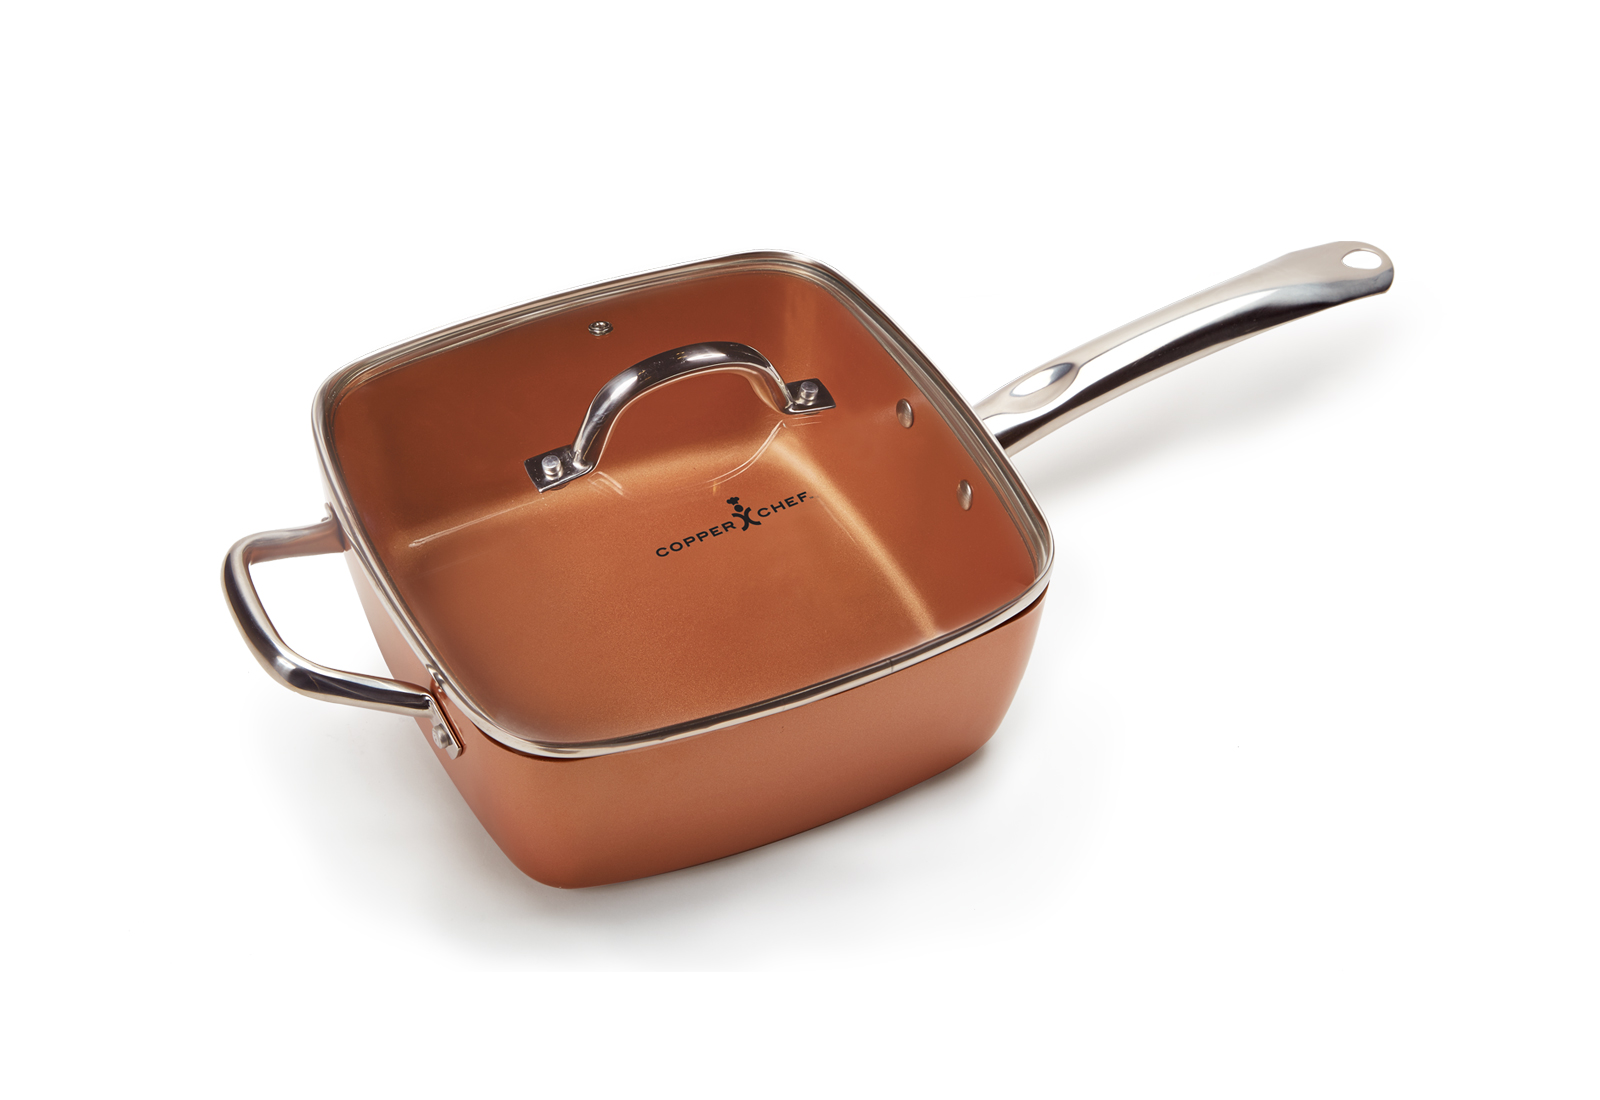 Copper Chef Deep Dish Pan Product Image